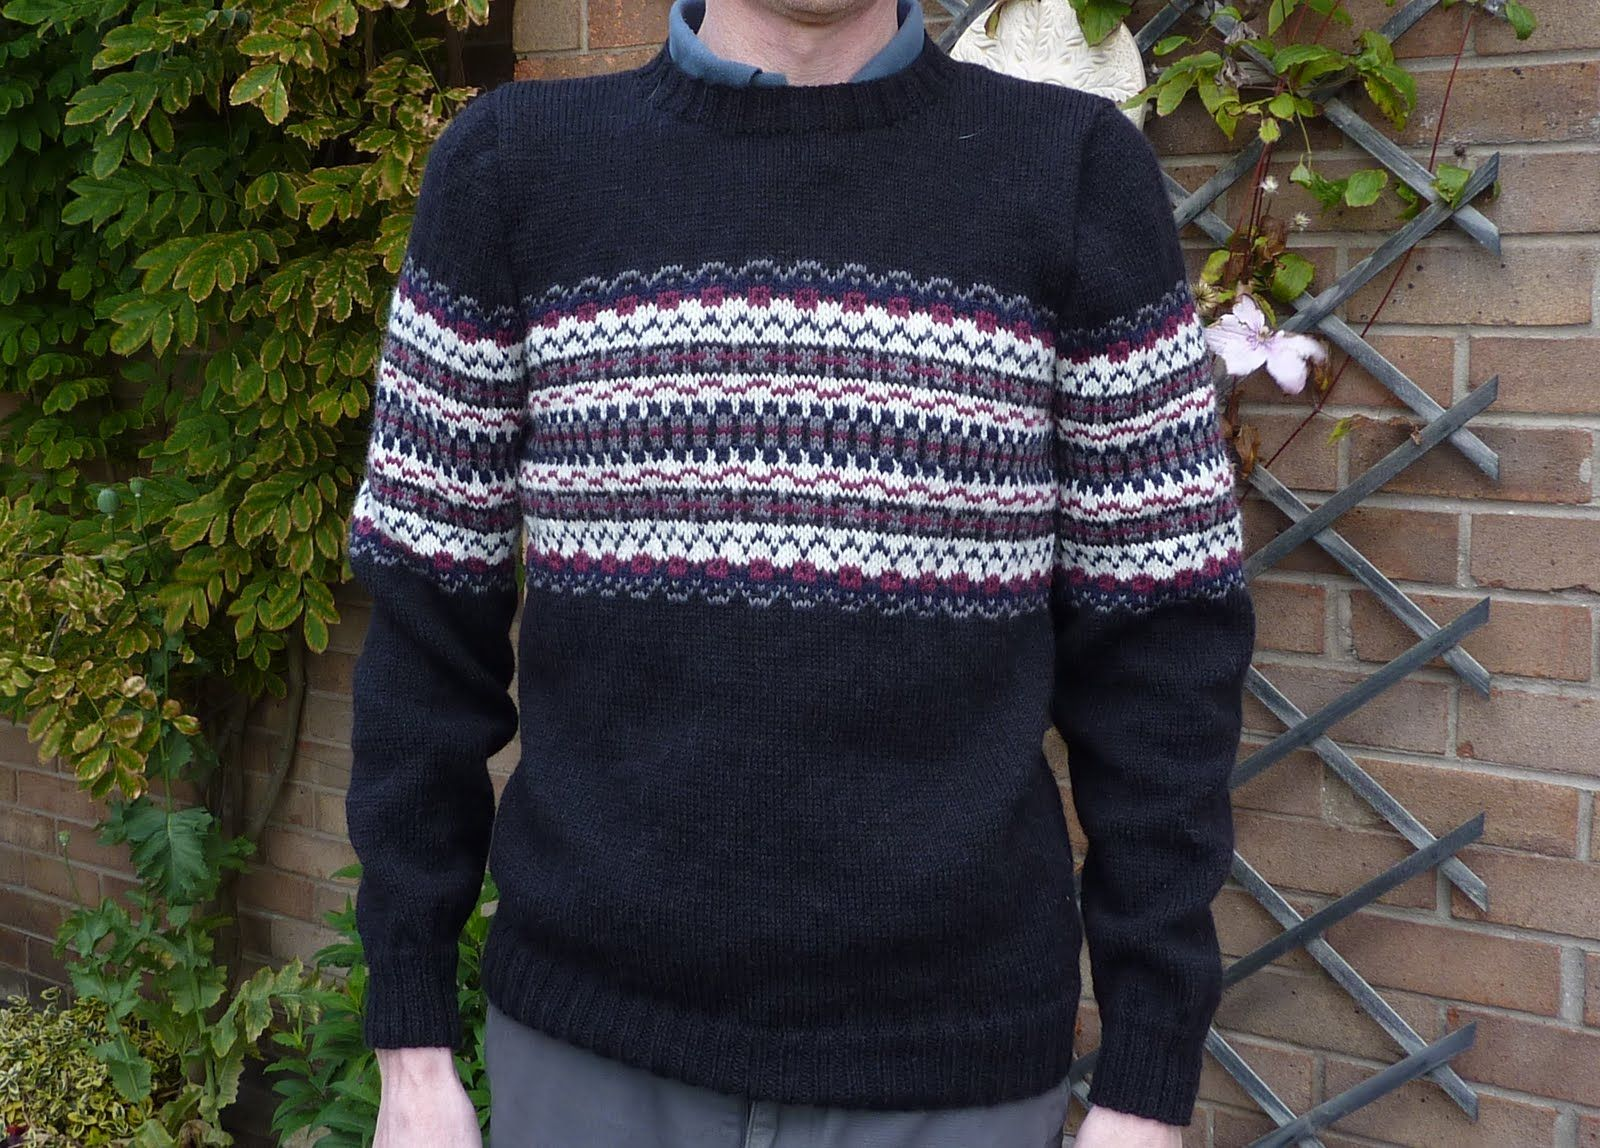 Men are seldom seen taking interest in knitting and even those who like it do generally want to make a sweater as it is a time consuming project. Description from aknittingblog.com. I searched for this on bing.com/images